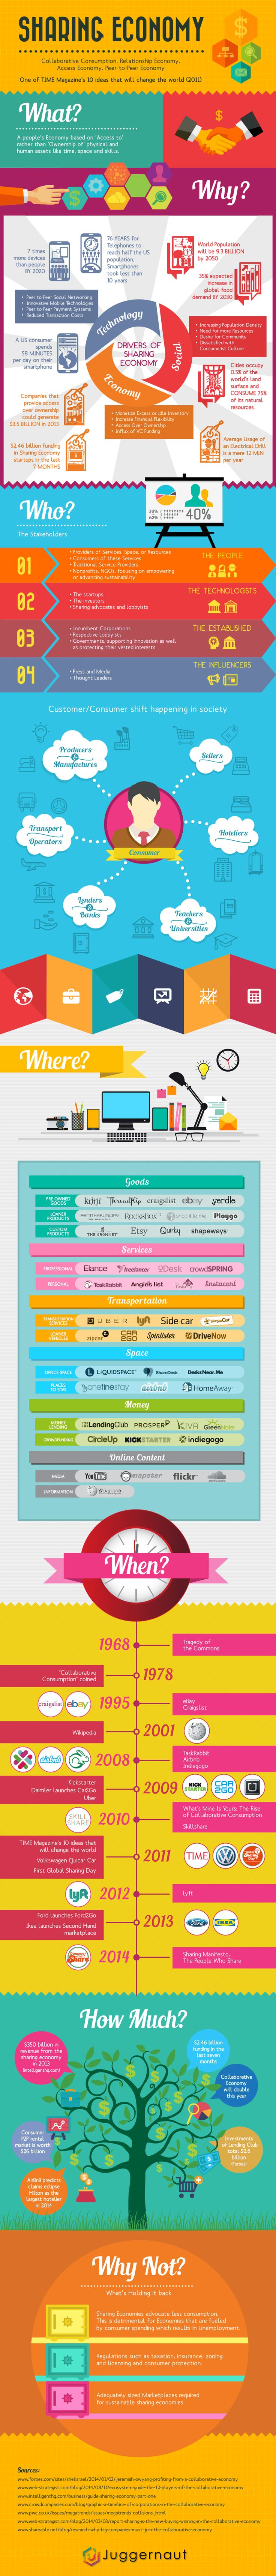 Nice #infographic that would help understanding the sharing economy #ouishare #elearning